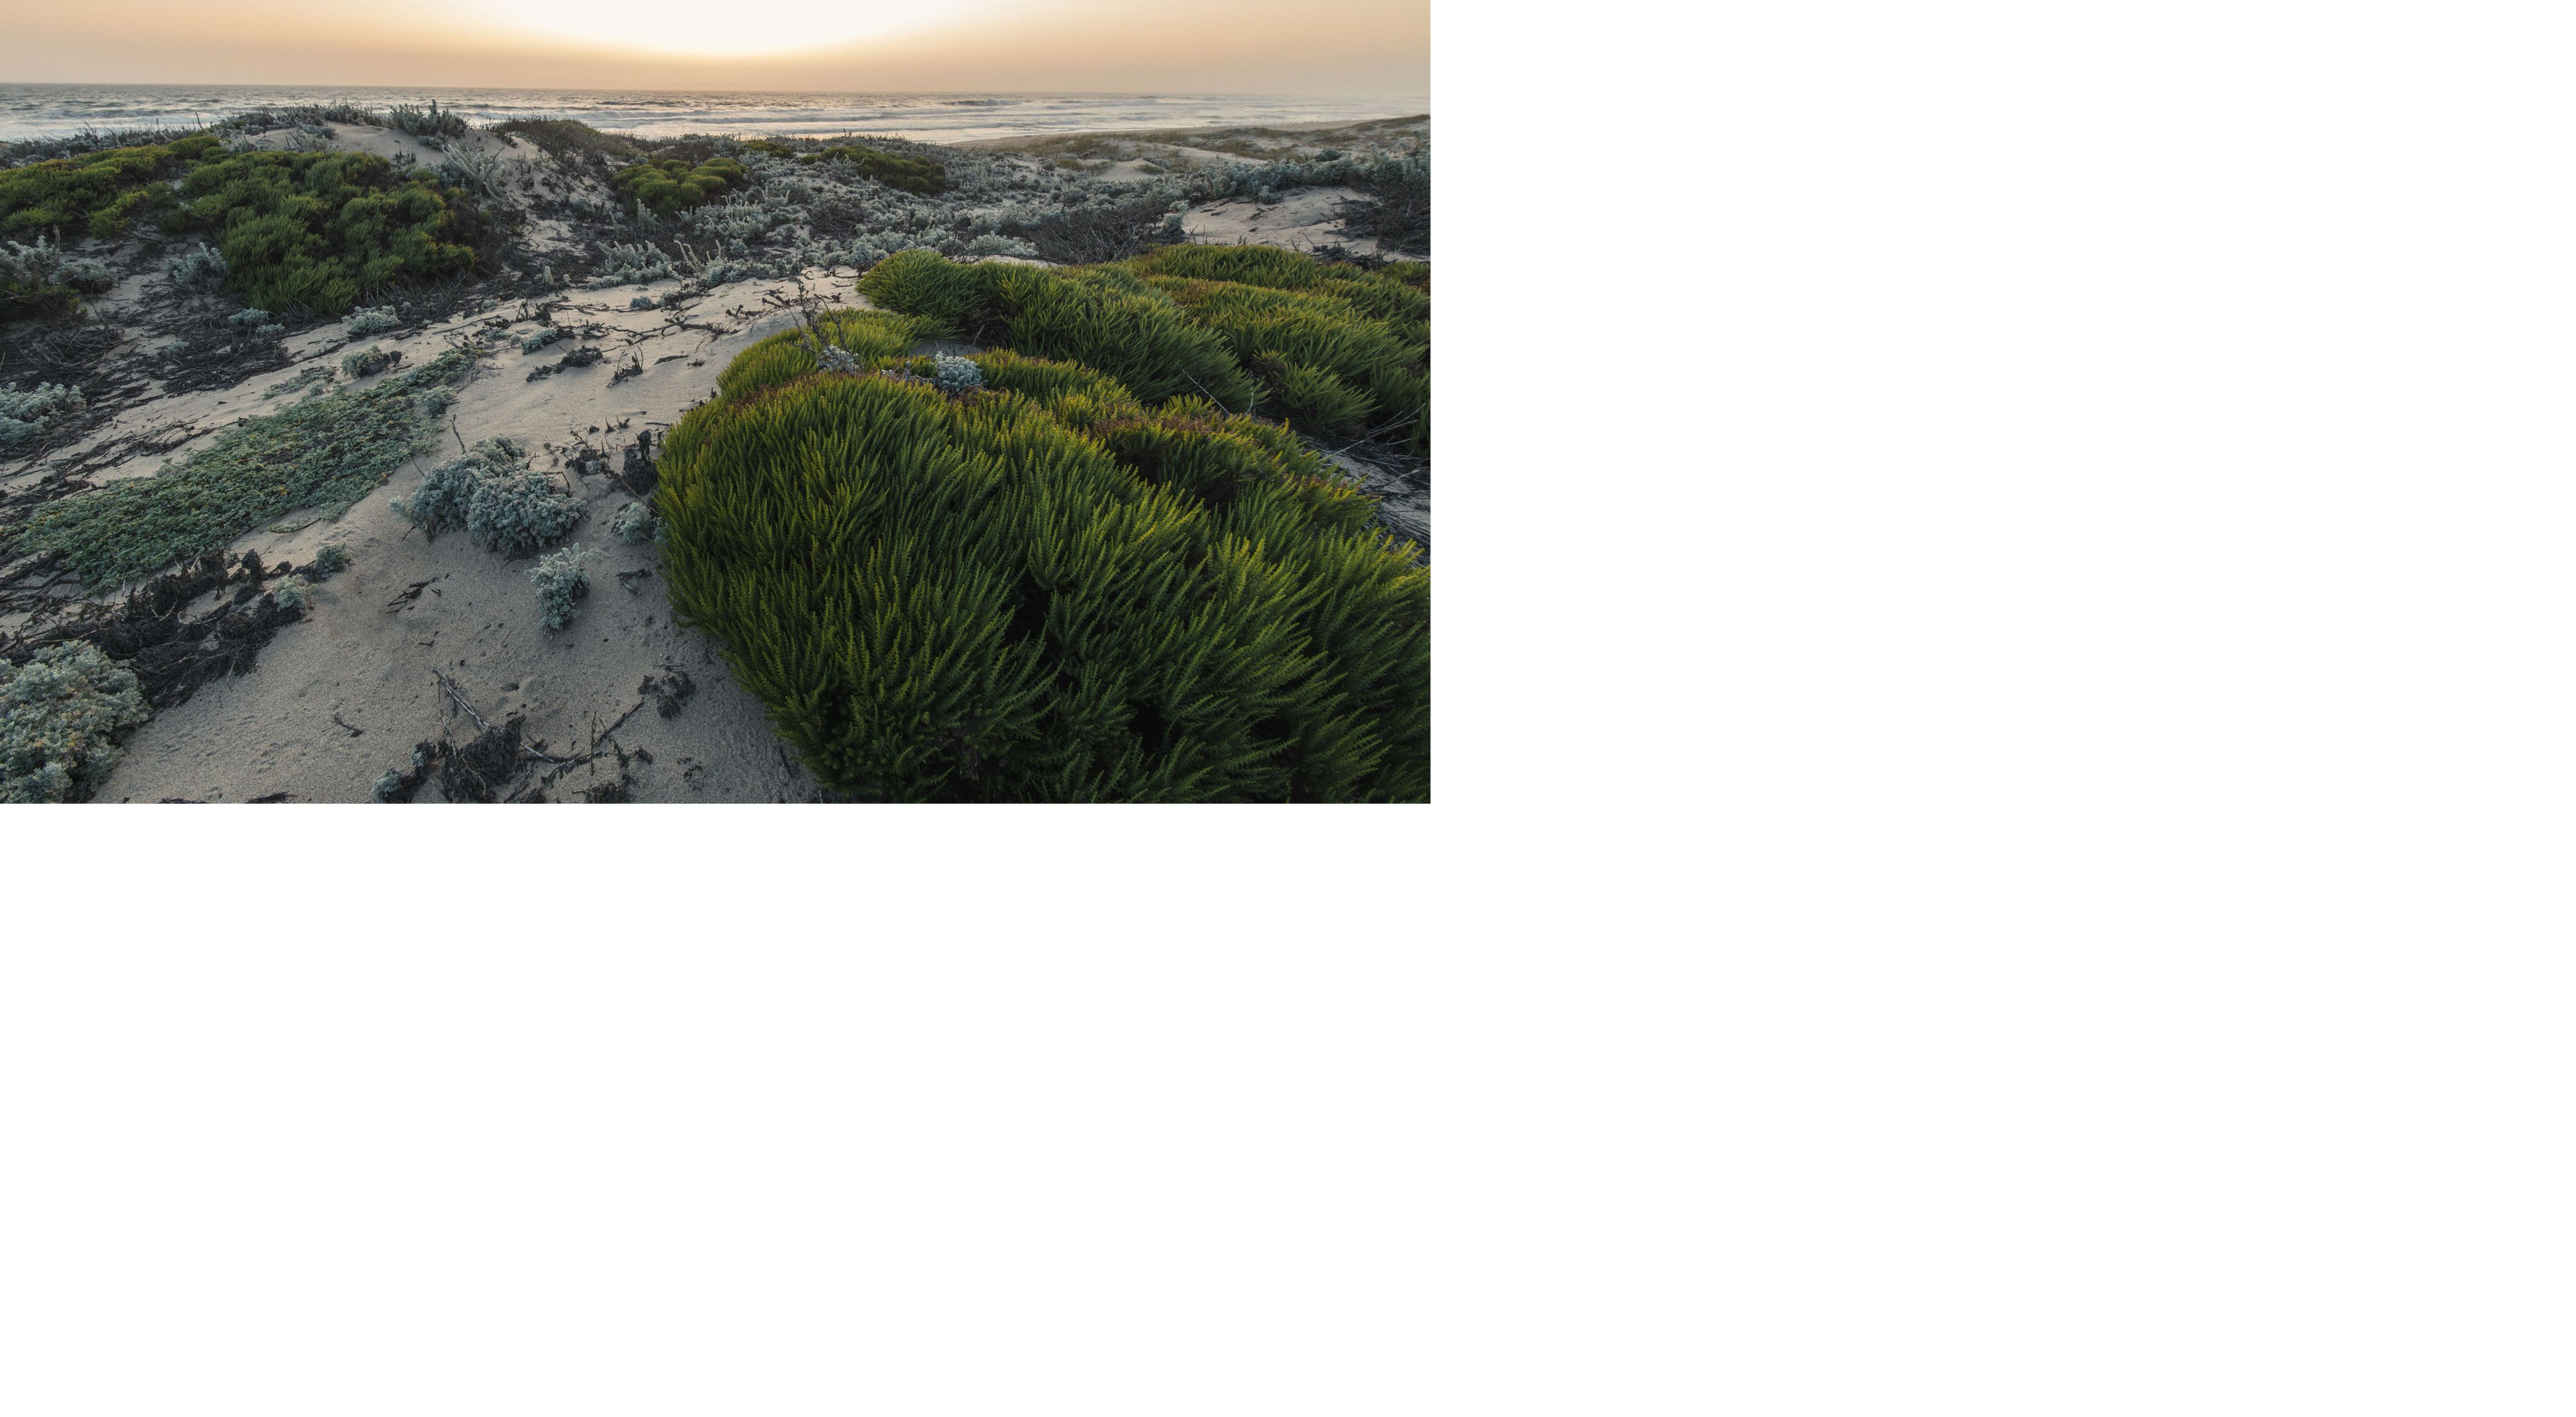 Coastal dunes, one of the threatened California ecosystems, found at Moss Landing, California, north of Monterey.